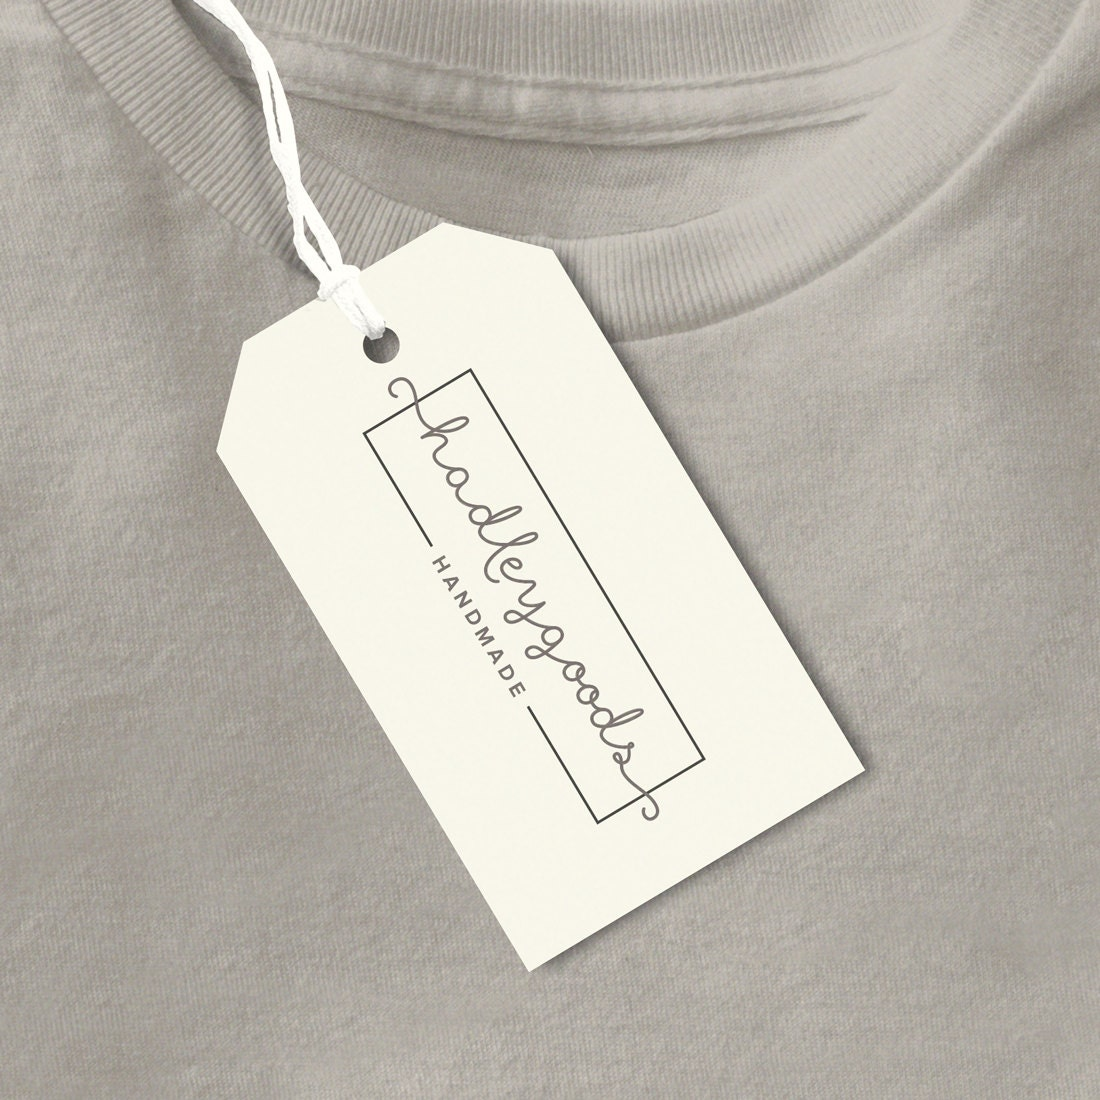 Custom Clothing Tags Handmade Tag Product Label Business